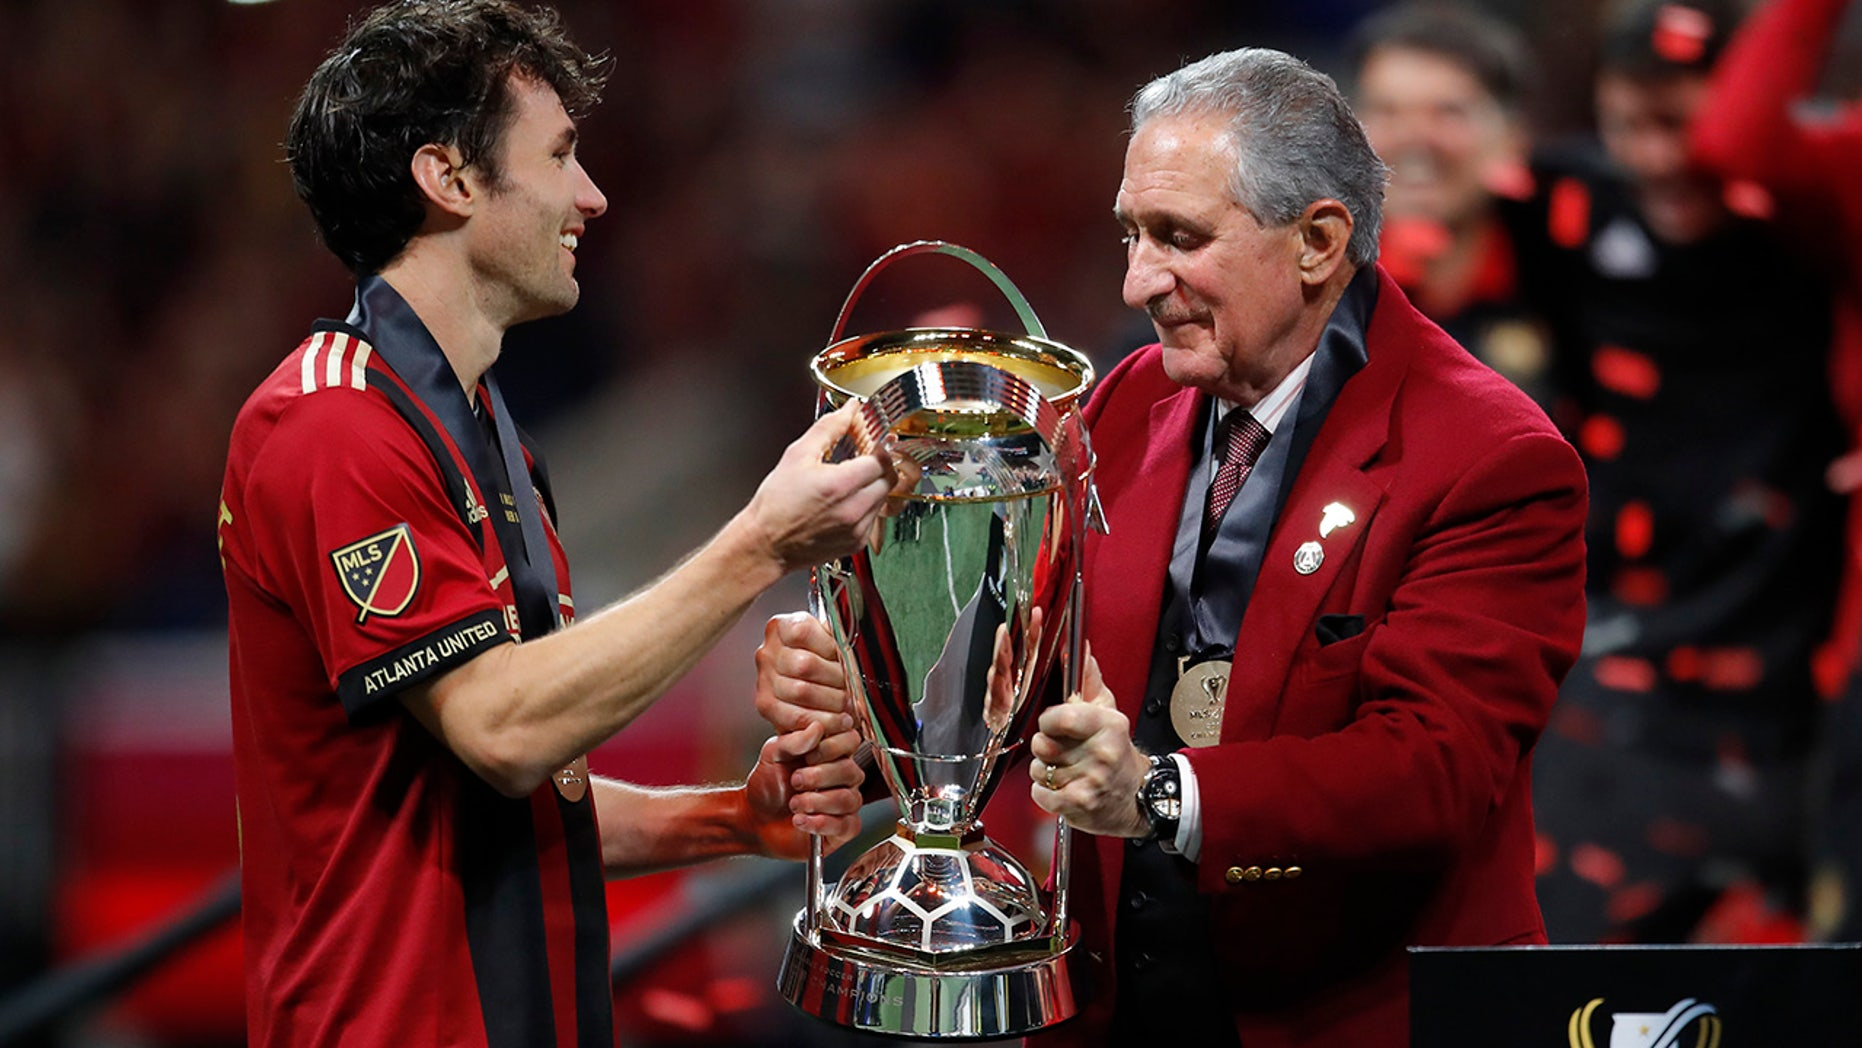 Atlanta United owner Arthur Blank, right, hands the trophy to team captain Michael Parkhurst (3) after the MLS Cup championship soccer game against the Portland Timbers, Saturday, Dec. 8, 2018, in Atlanta. Atlanta United won 2-0. (AP Photo/Todd Kirkland)